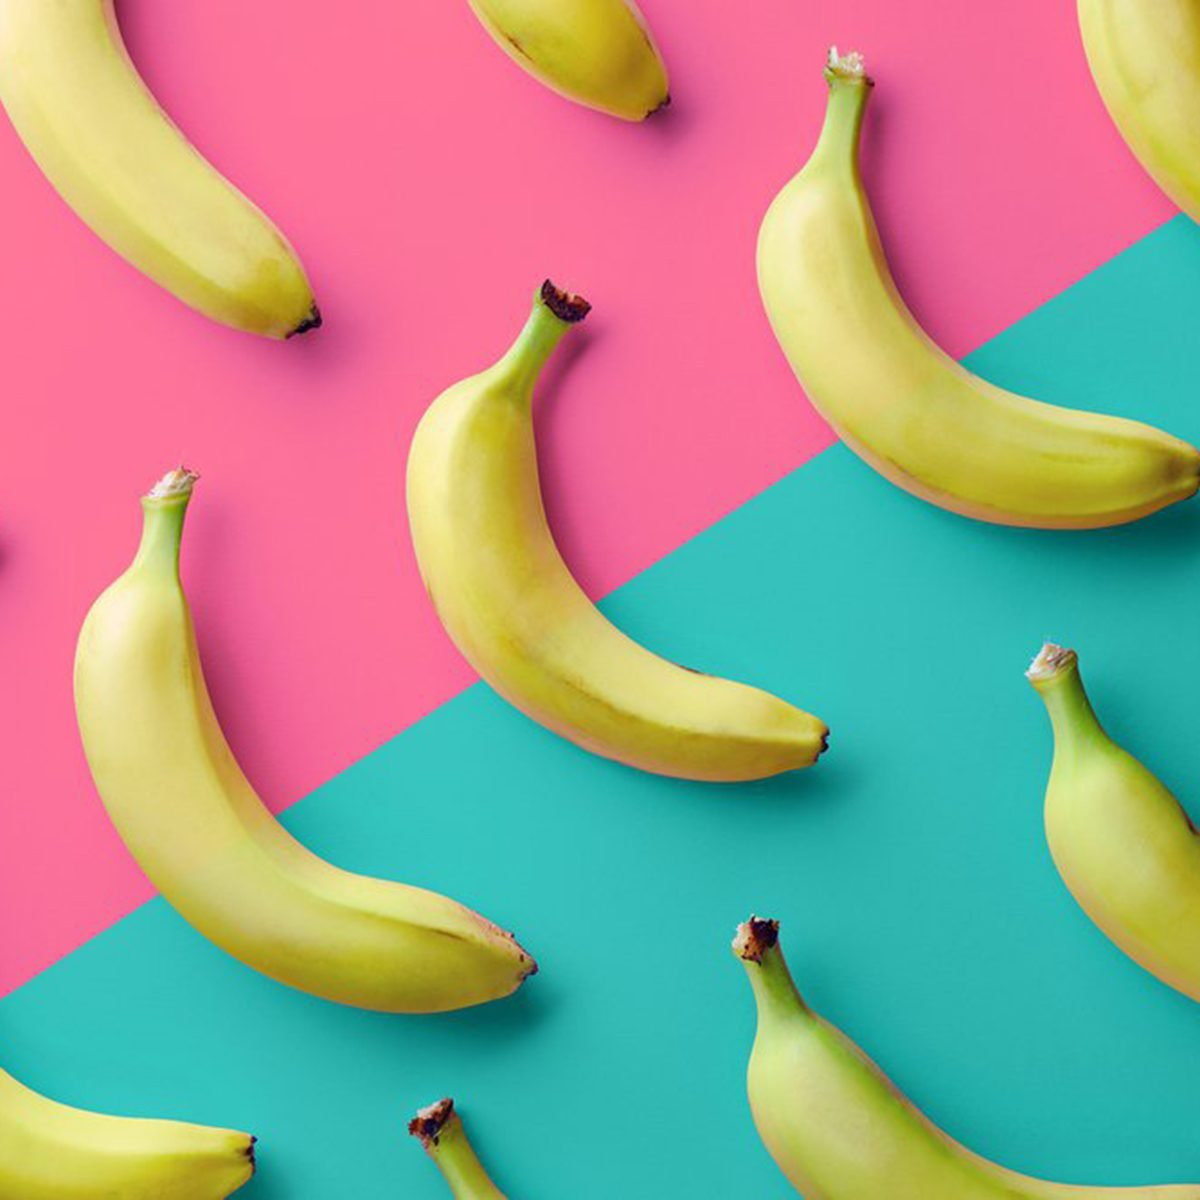 Bananas on blue and pink background